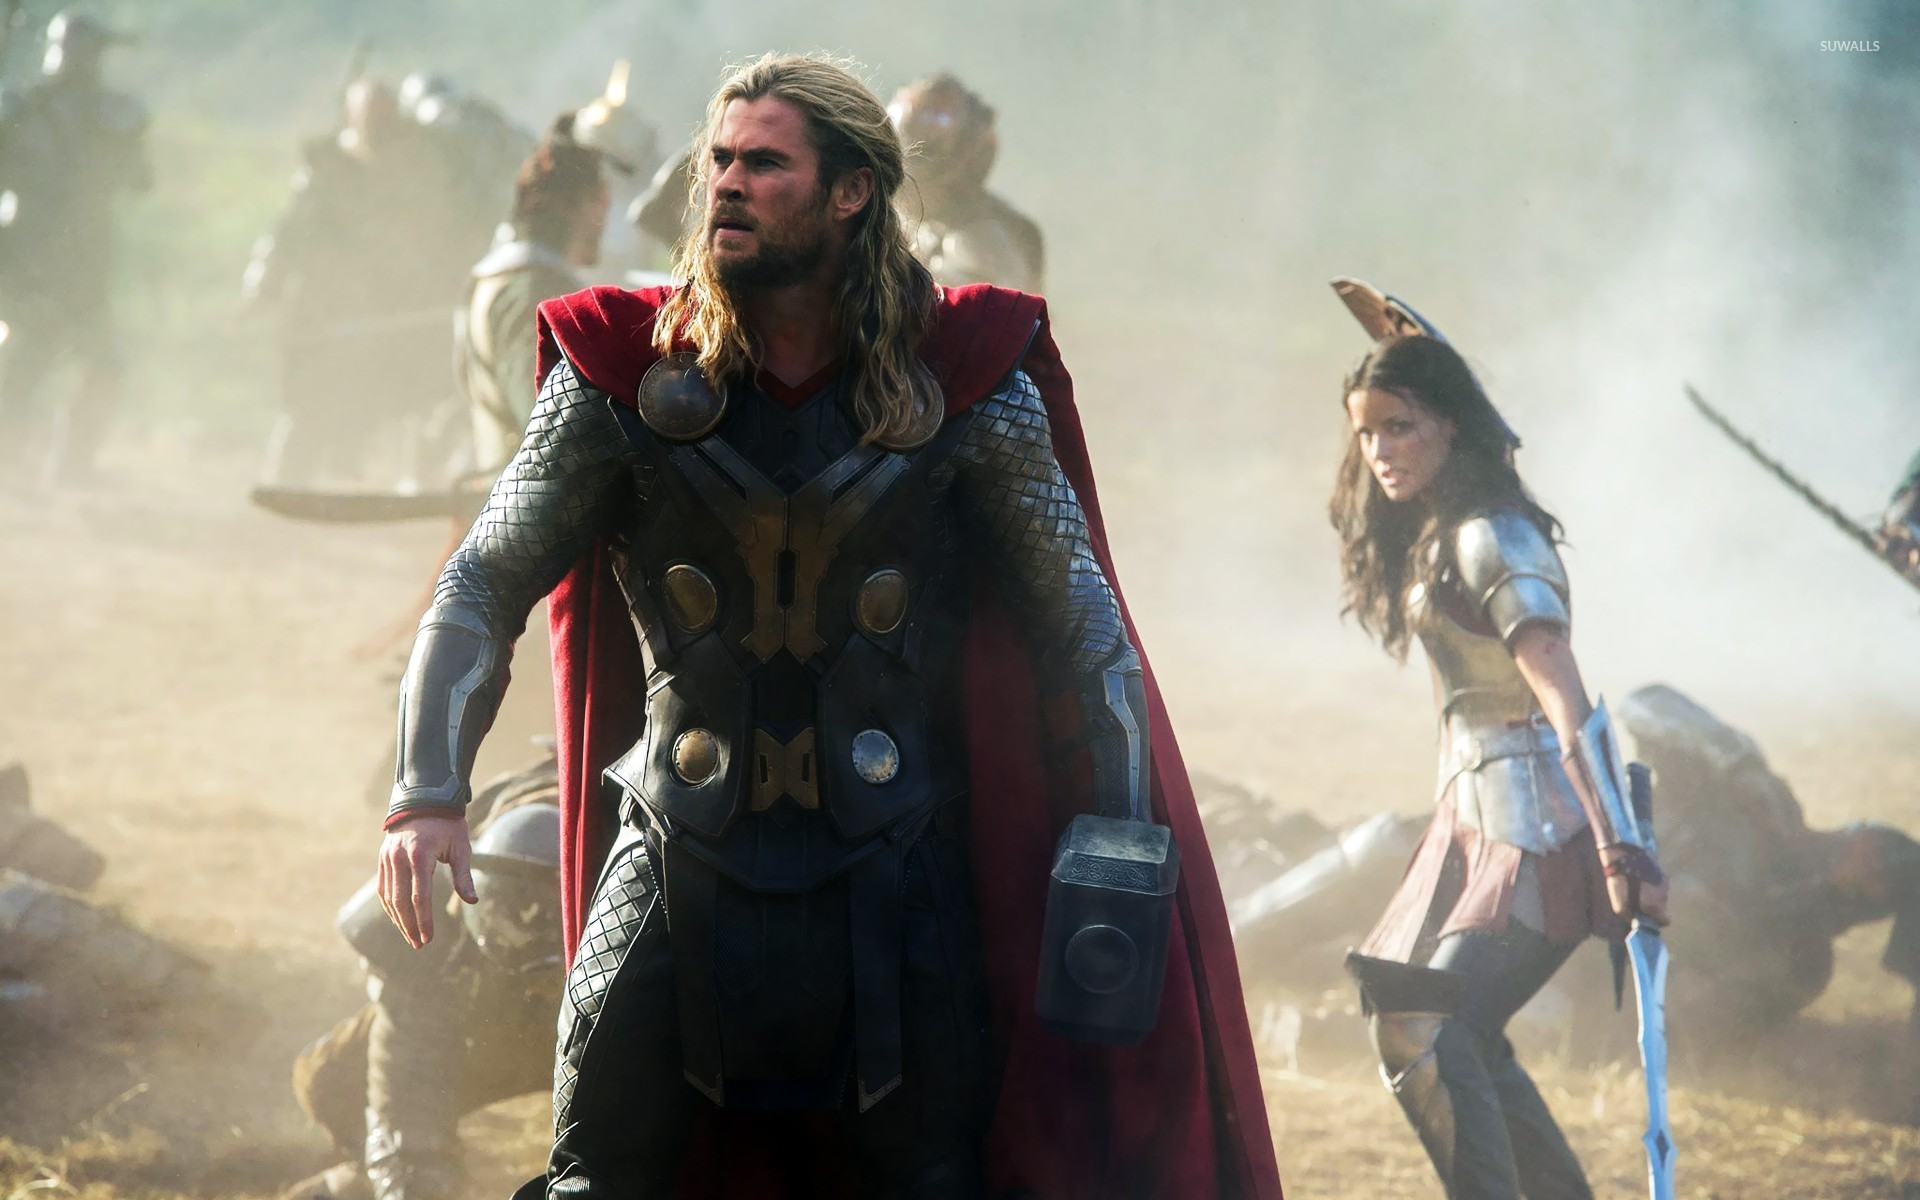 Revisiting the surprisingly essential Thor: The Dark World after Avengers: Endgame